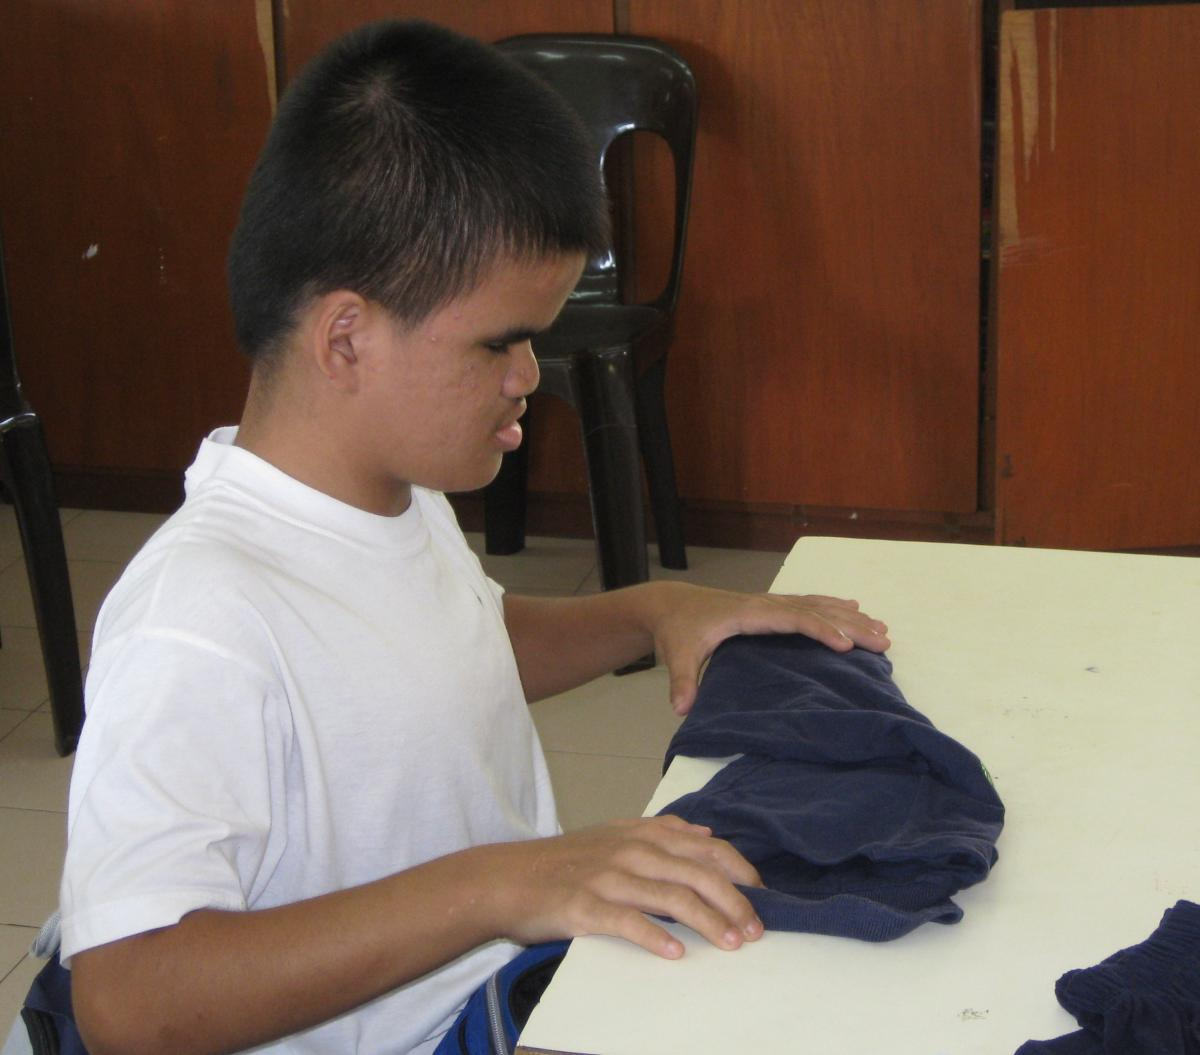 Young man folds laundry